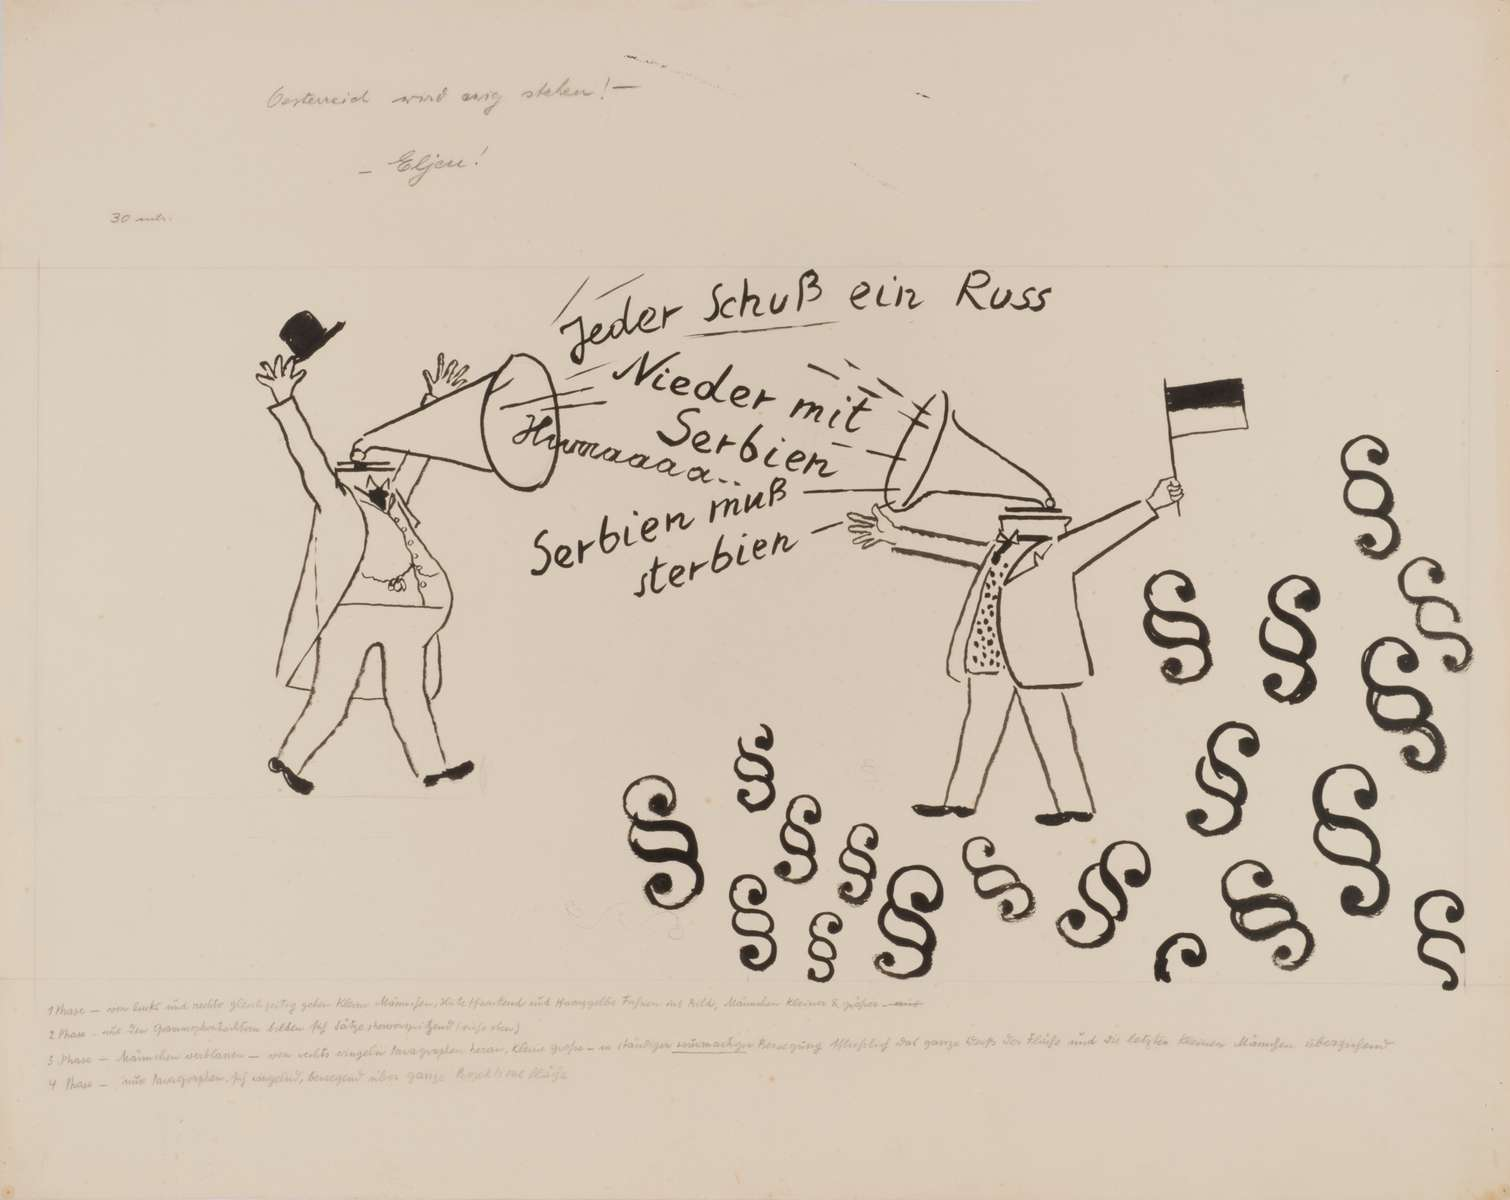 George GROSZ (1893 - 1959)Everyone shoot a Russ (ian)Jeder Schuss ein RussDrawing for the background projection for SchwejkBrush, reed pen and pen and ink20 ¼ x 25 ½ in (51,4 x 64,9 cm)Please click HERE for full fact sheet